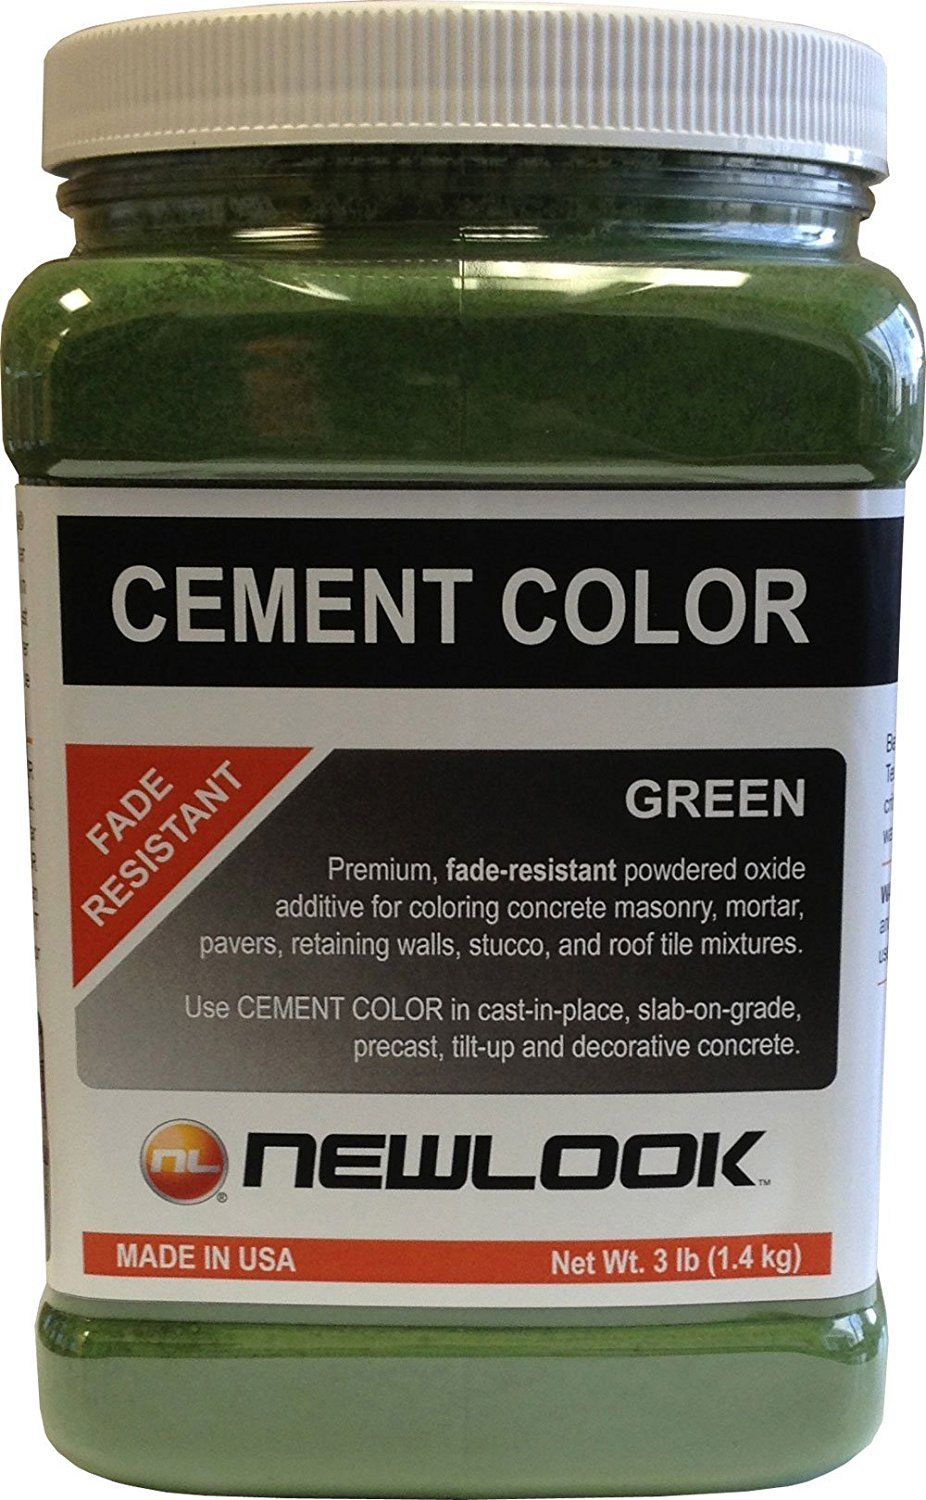 CEMENT COLOR 3 lb. Green Fade Resistant Cement Color